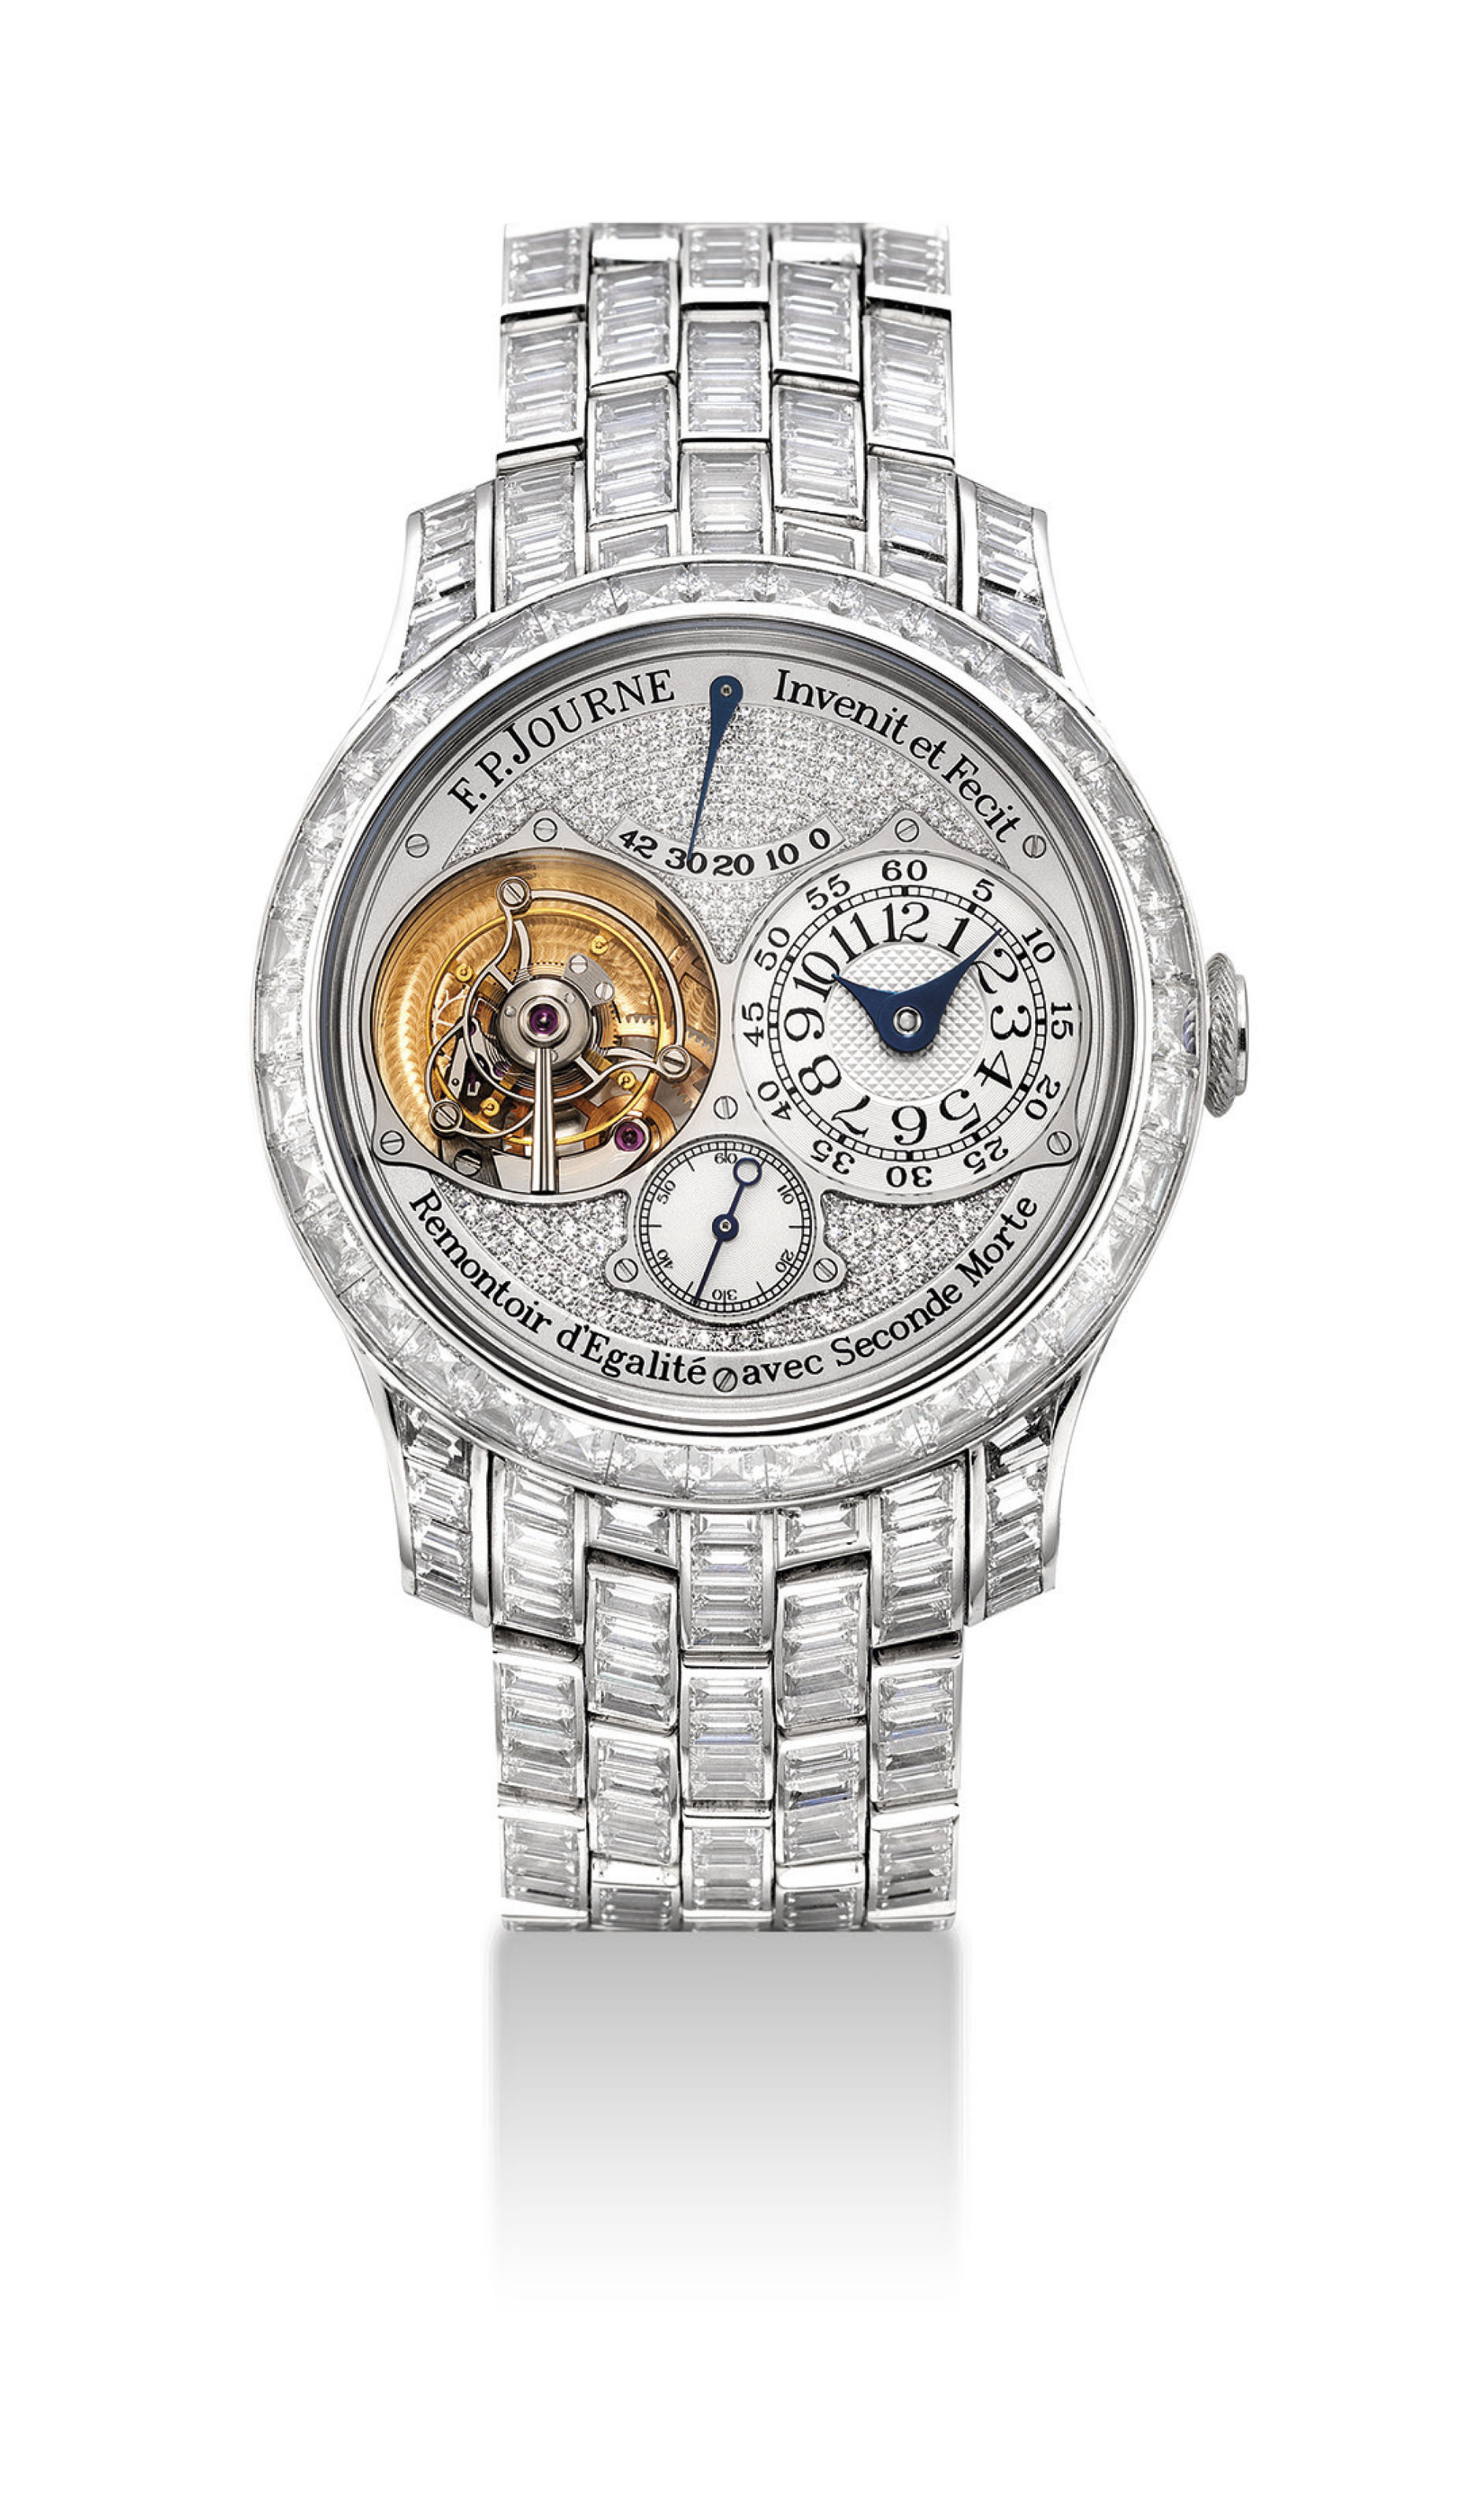 F.P. JOURNE. AN EXCEPTIONAL AND EXTREMELY RARE PLATINUM AND DIAMOND-SET TOURBILLON WRISTWATCH WITH CONSTANT FORCE WINDING, POWER RESERVE, DEAD BEAT SECONDS AND BRACELET